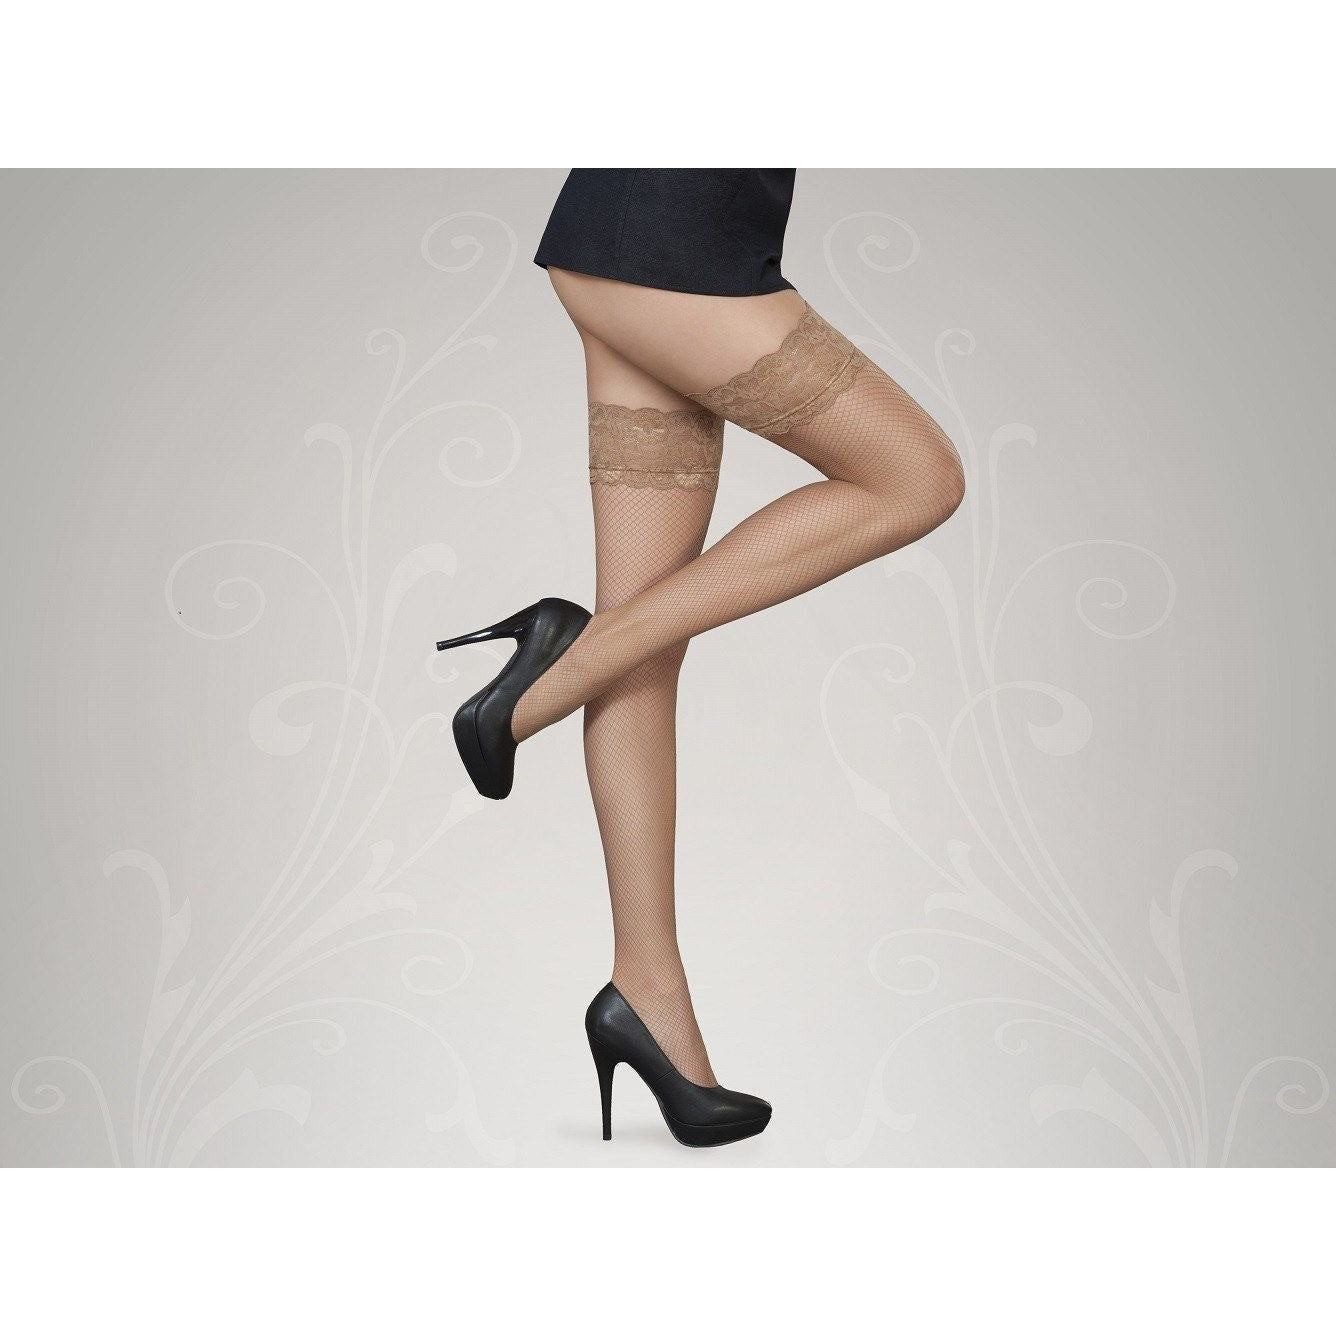 Stockings - Antilope Fishnet Thigh High Stockings